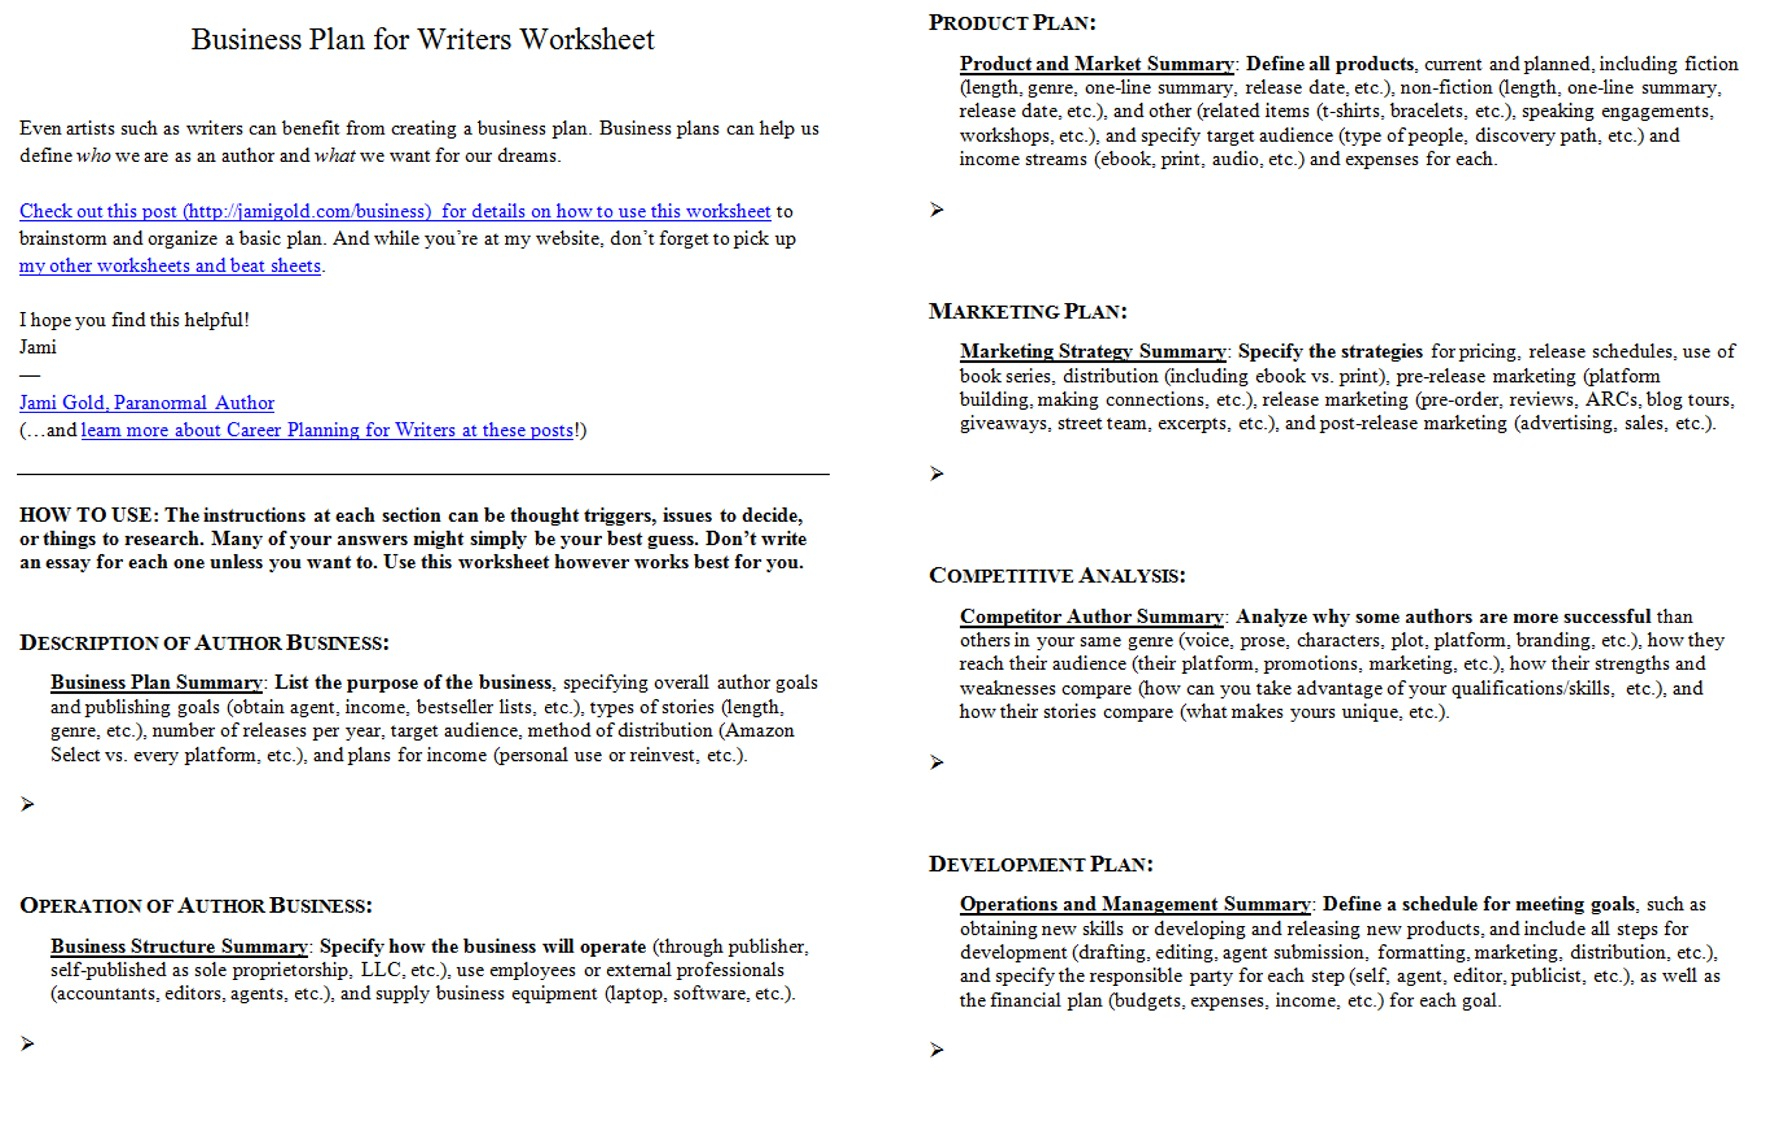 Aldiablosus  Nice Worksheets For Writers  Jami Gold Paranormal Author With Engaging Screen Shot Of Both Pages Of The Business Plan For Writers Worksheet With Agreeable Hands On Equation Worksheets Also Where Do Teachers Get Their Worksheets In Addition Free Worksheet For Grade  And Worksheet On Greater Than And Less Than As Well As Mental Maths Worksheet Additionally Simple Compound Sentence Worksheet From Jamigoldcom With Aldiablosus  Engaging Worksheets For Writers  Jami Gold Paranormal Author With Agreeable Screen Shot Of Both Pages Of The Business Plan For Writers Worksheet And Nice Hands On Equation Worksheets Also Where Do Teachers Get Their Worksheets In Addition Free Worksheet For Grade  From Jamigoldcom